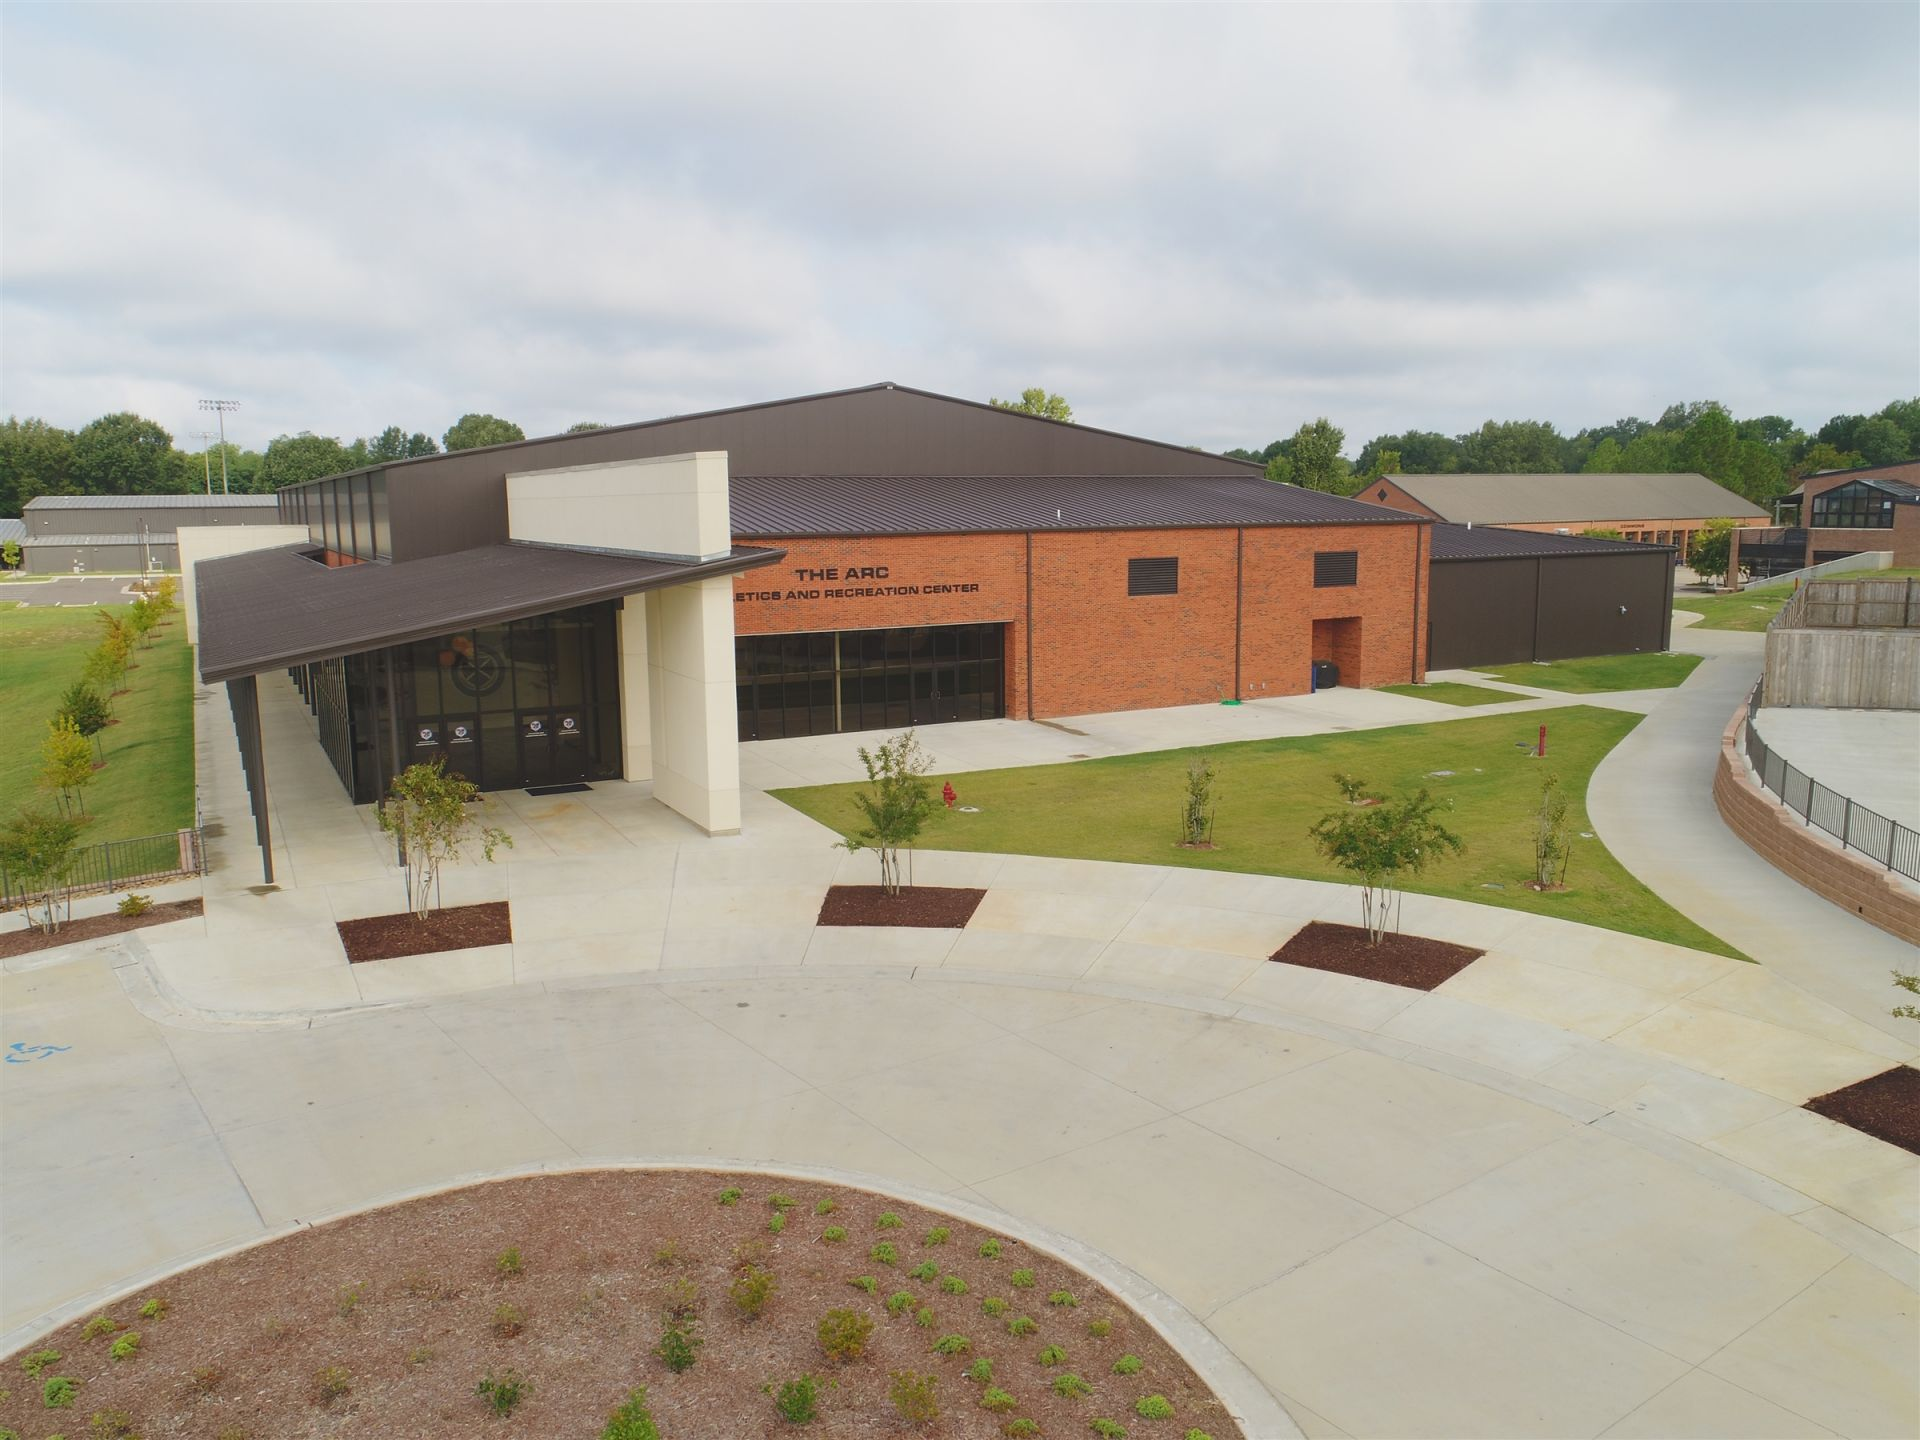 The state-of-the-art, 65,000 square foot Athletics and Recreation Center